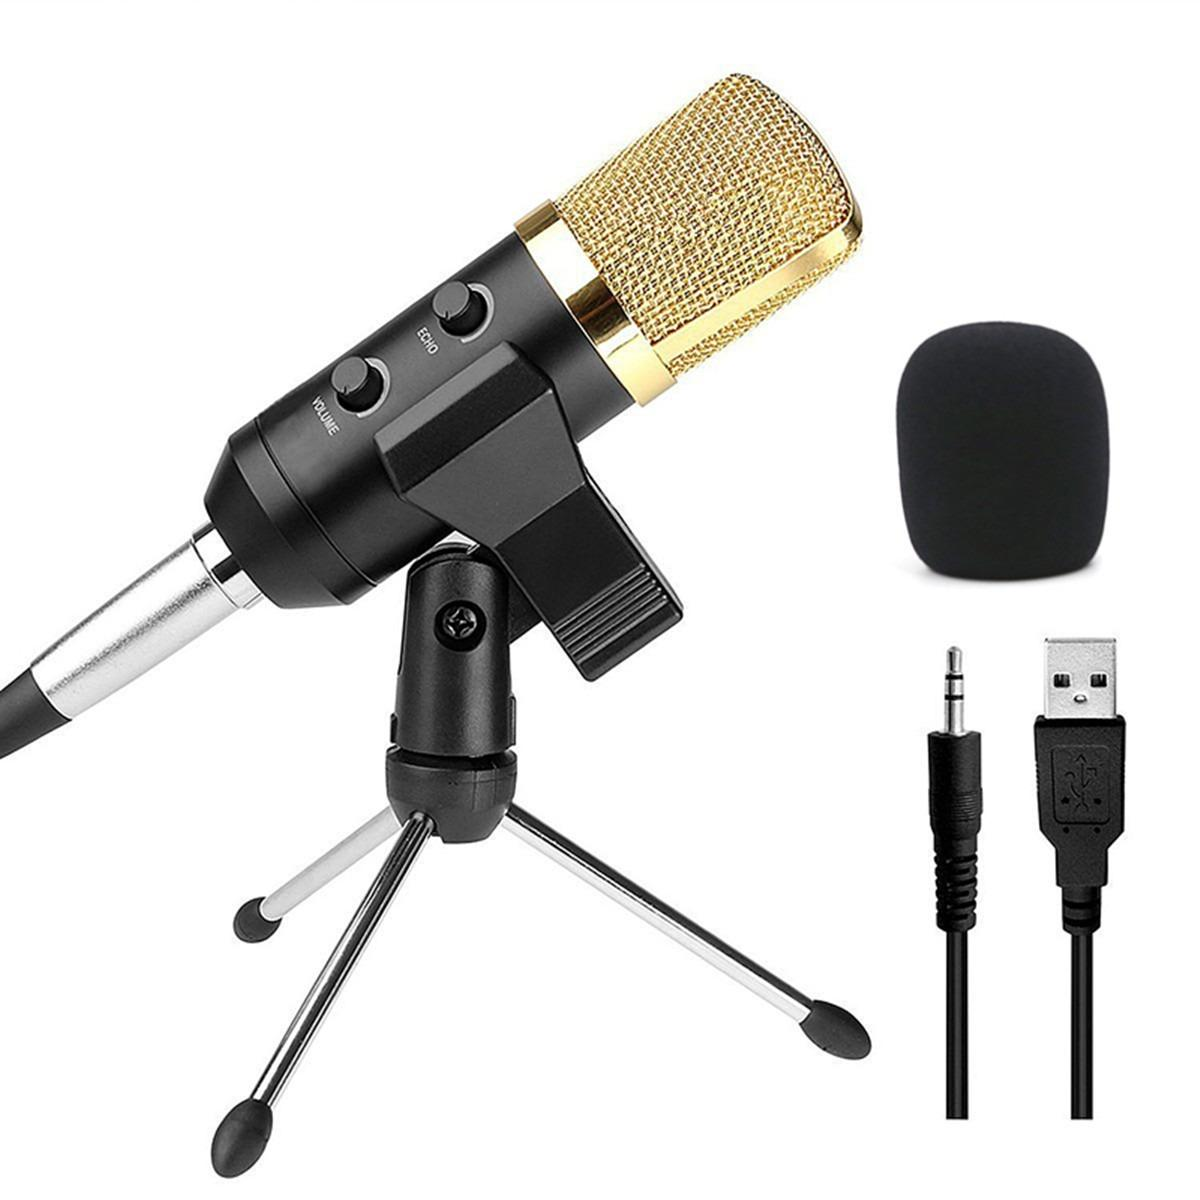 Jual Beli Audio Usb Kondensor Sound Studio Recording Vokal Mikrofon Dengan Stand Mount New Black Internasional Di Indonesia